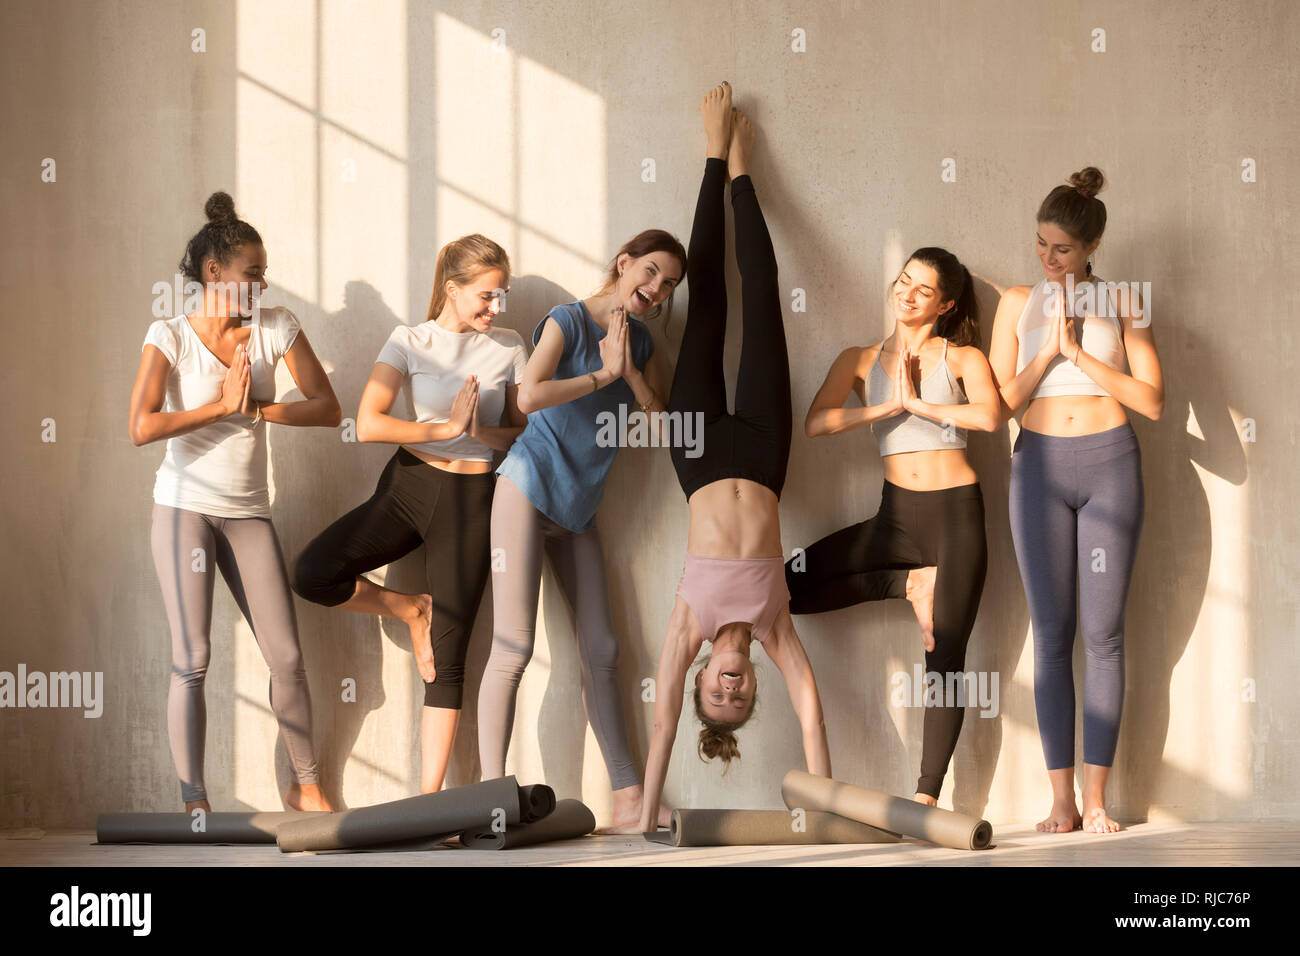 Excited female yogi have fun practicing yoga poses - Stock Image